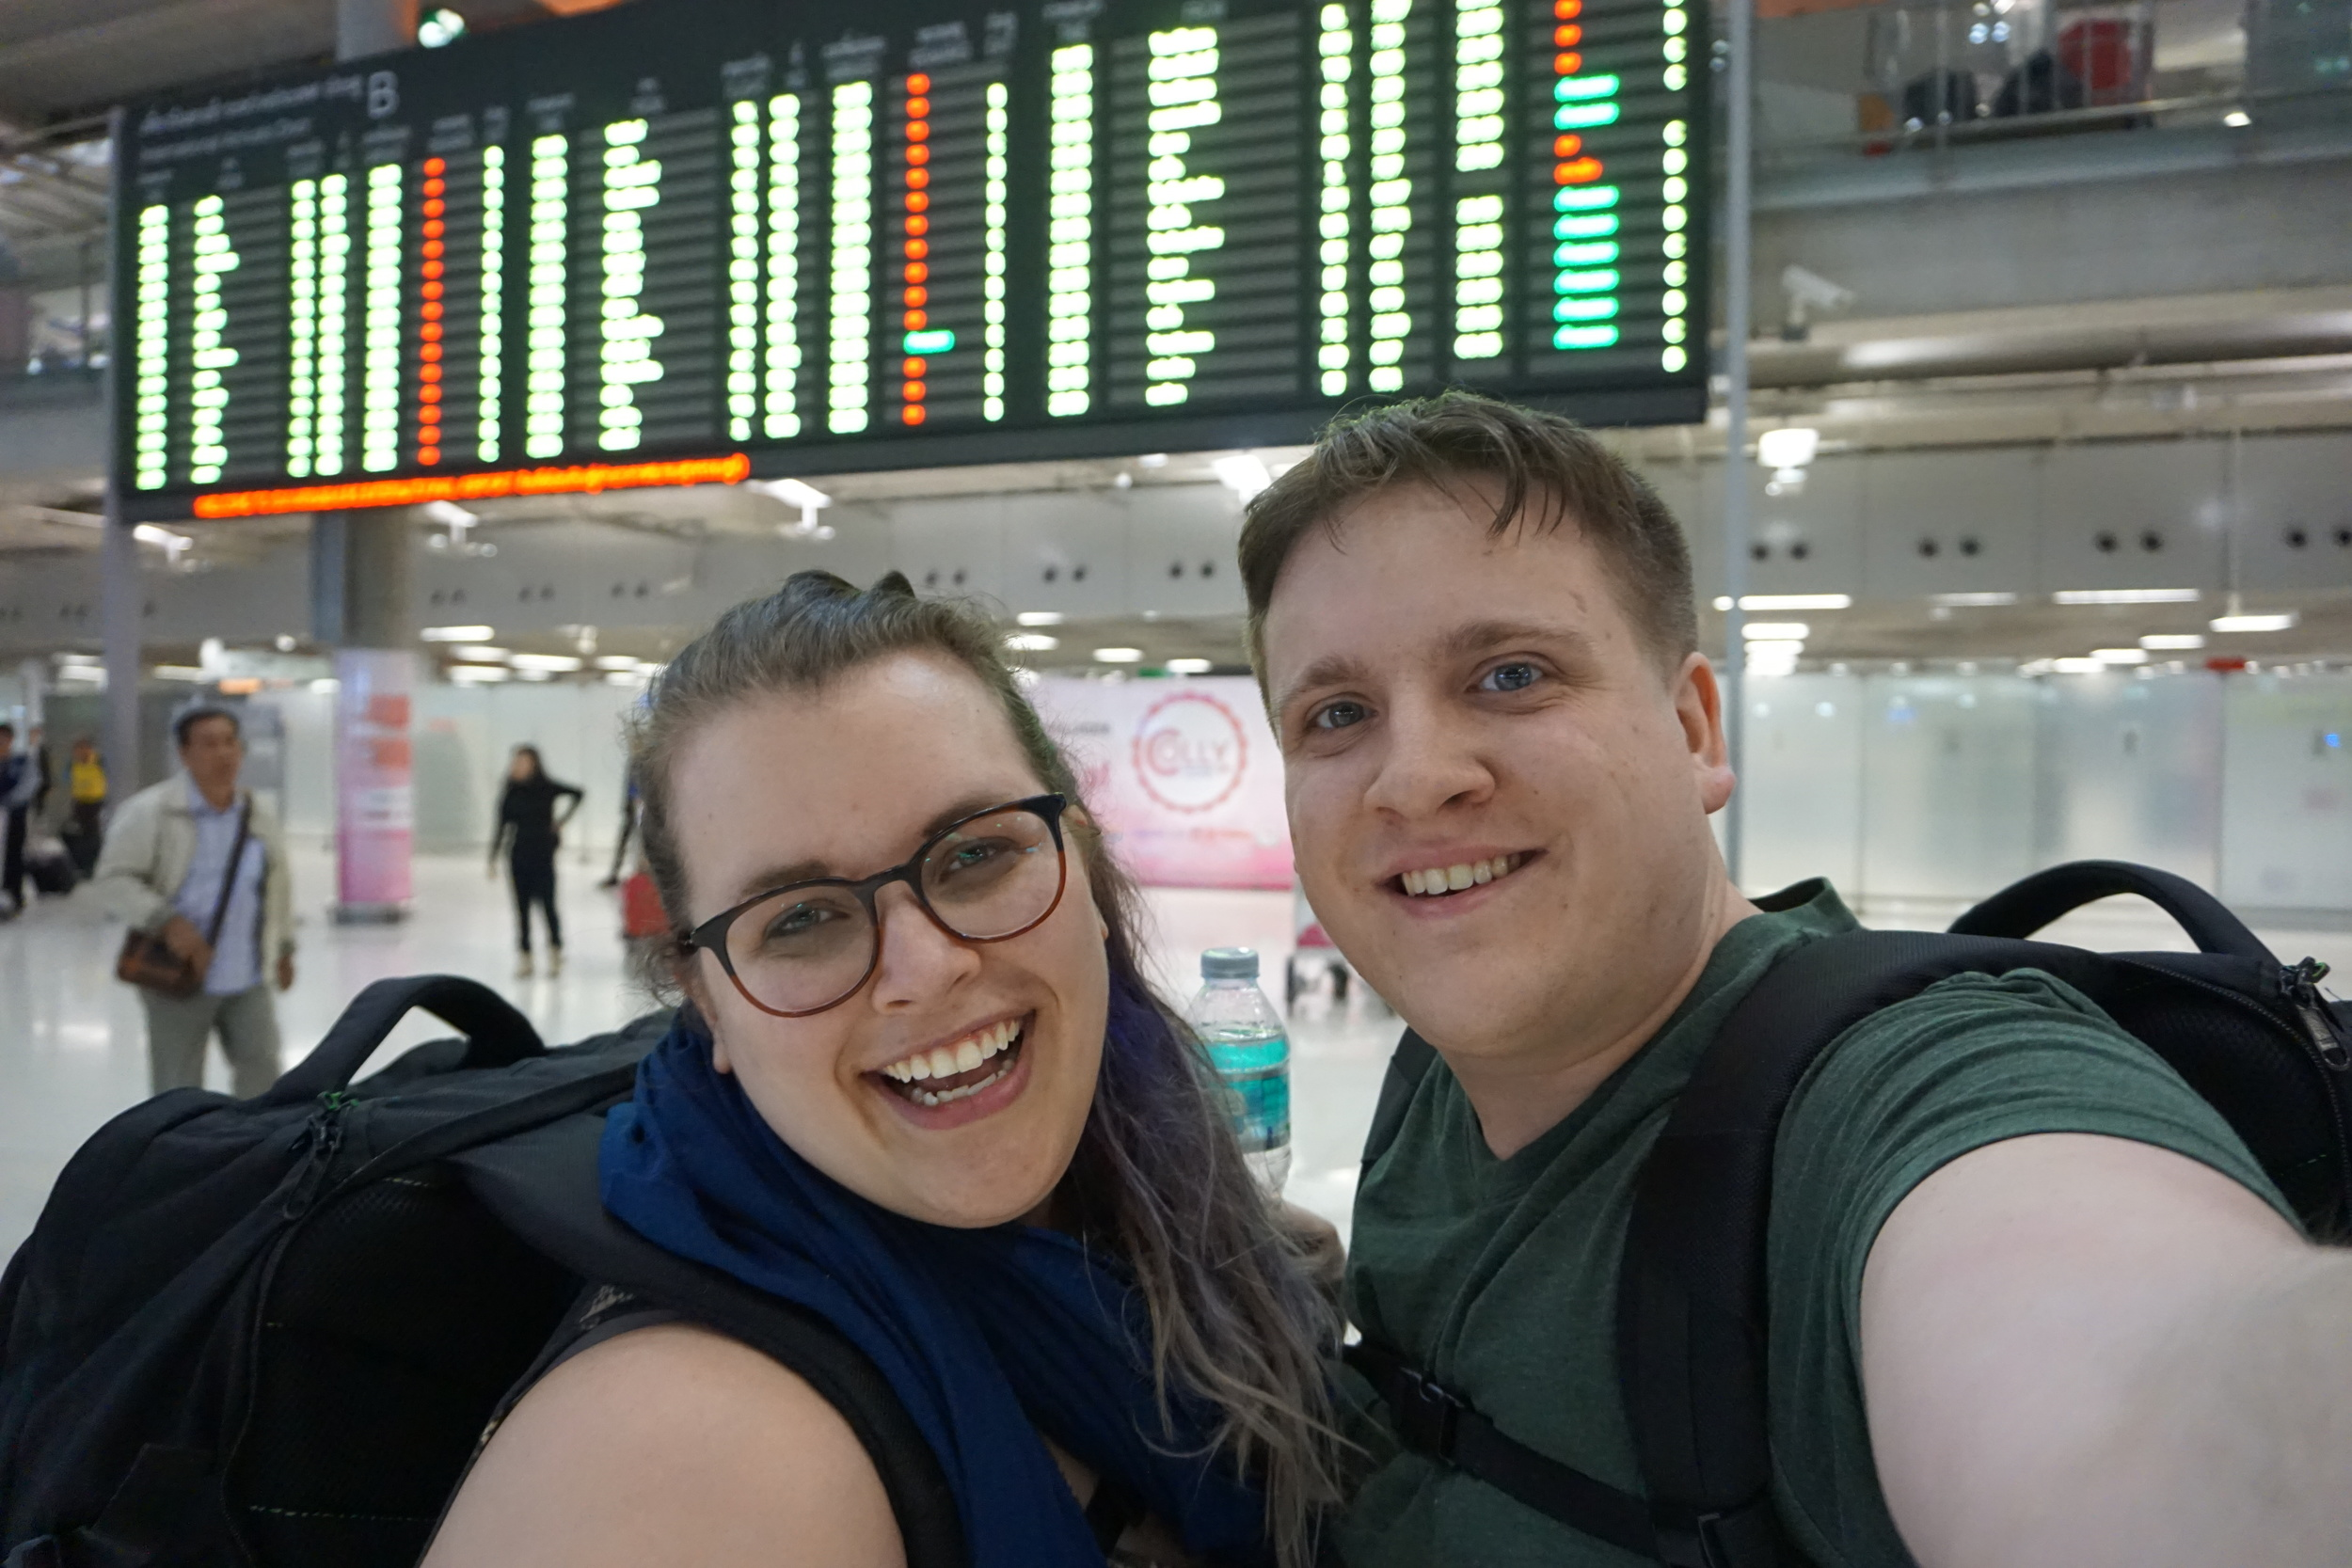 Us and our backpacks after 30 hours of traveling!